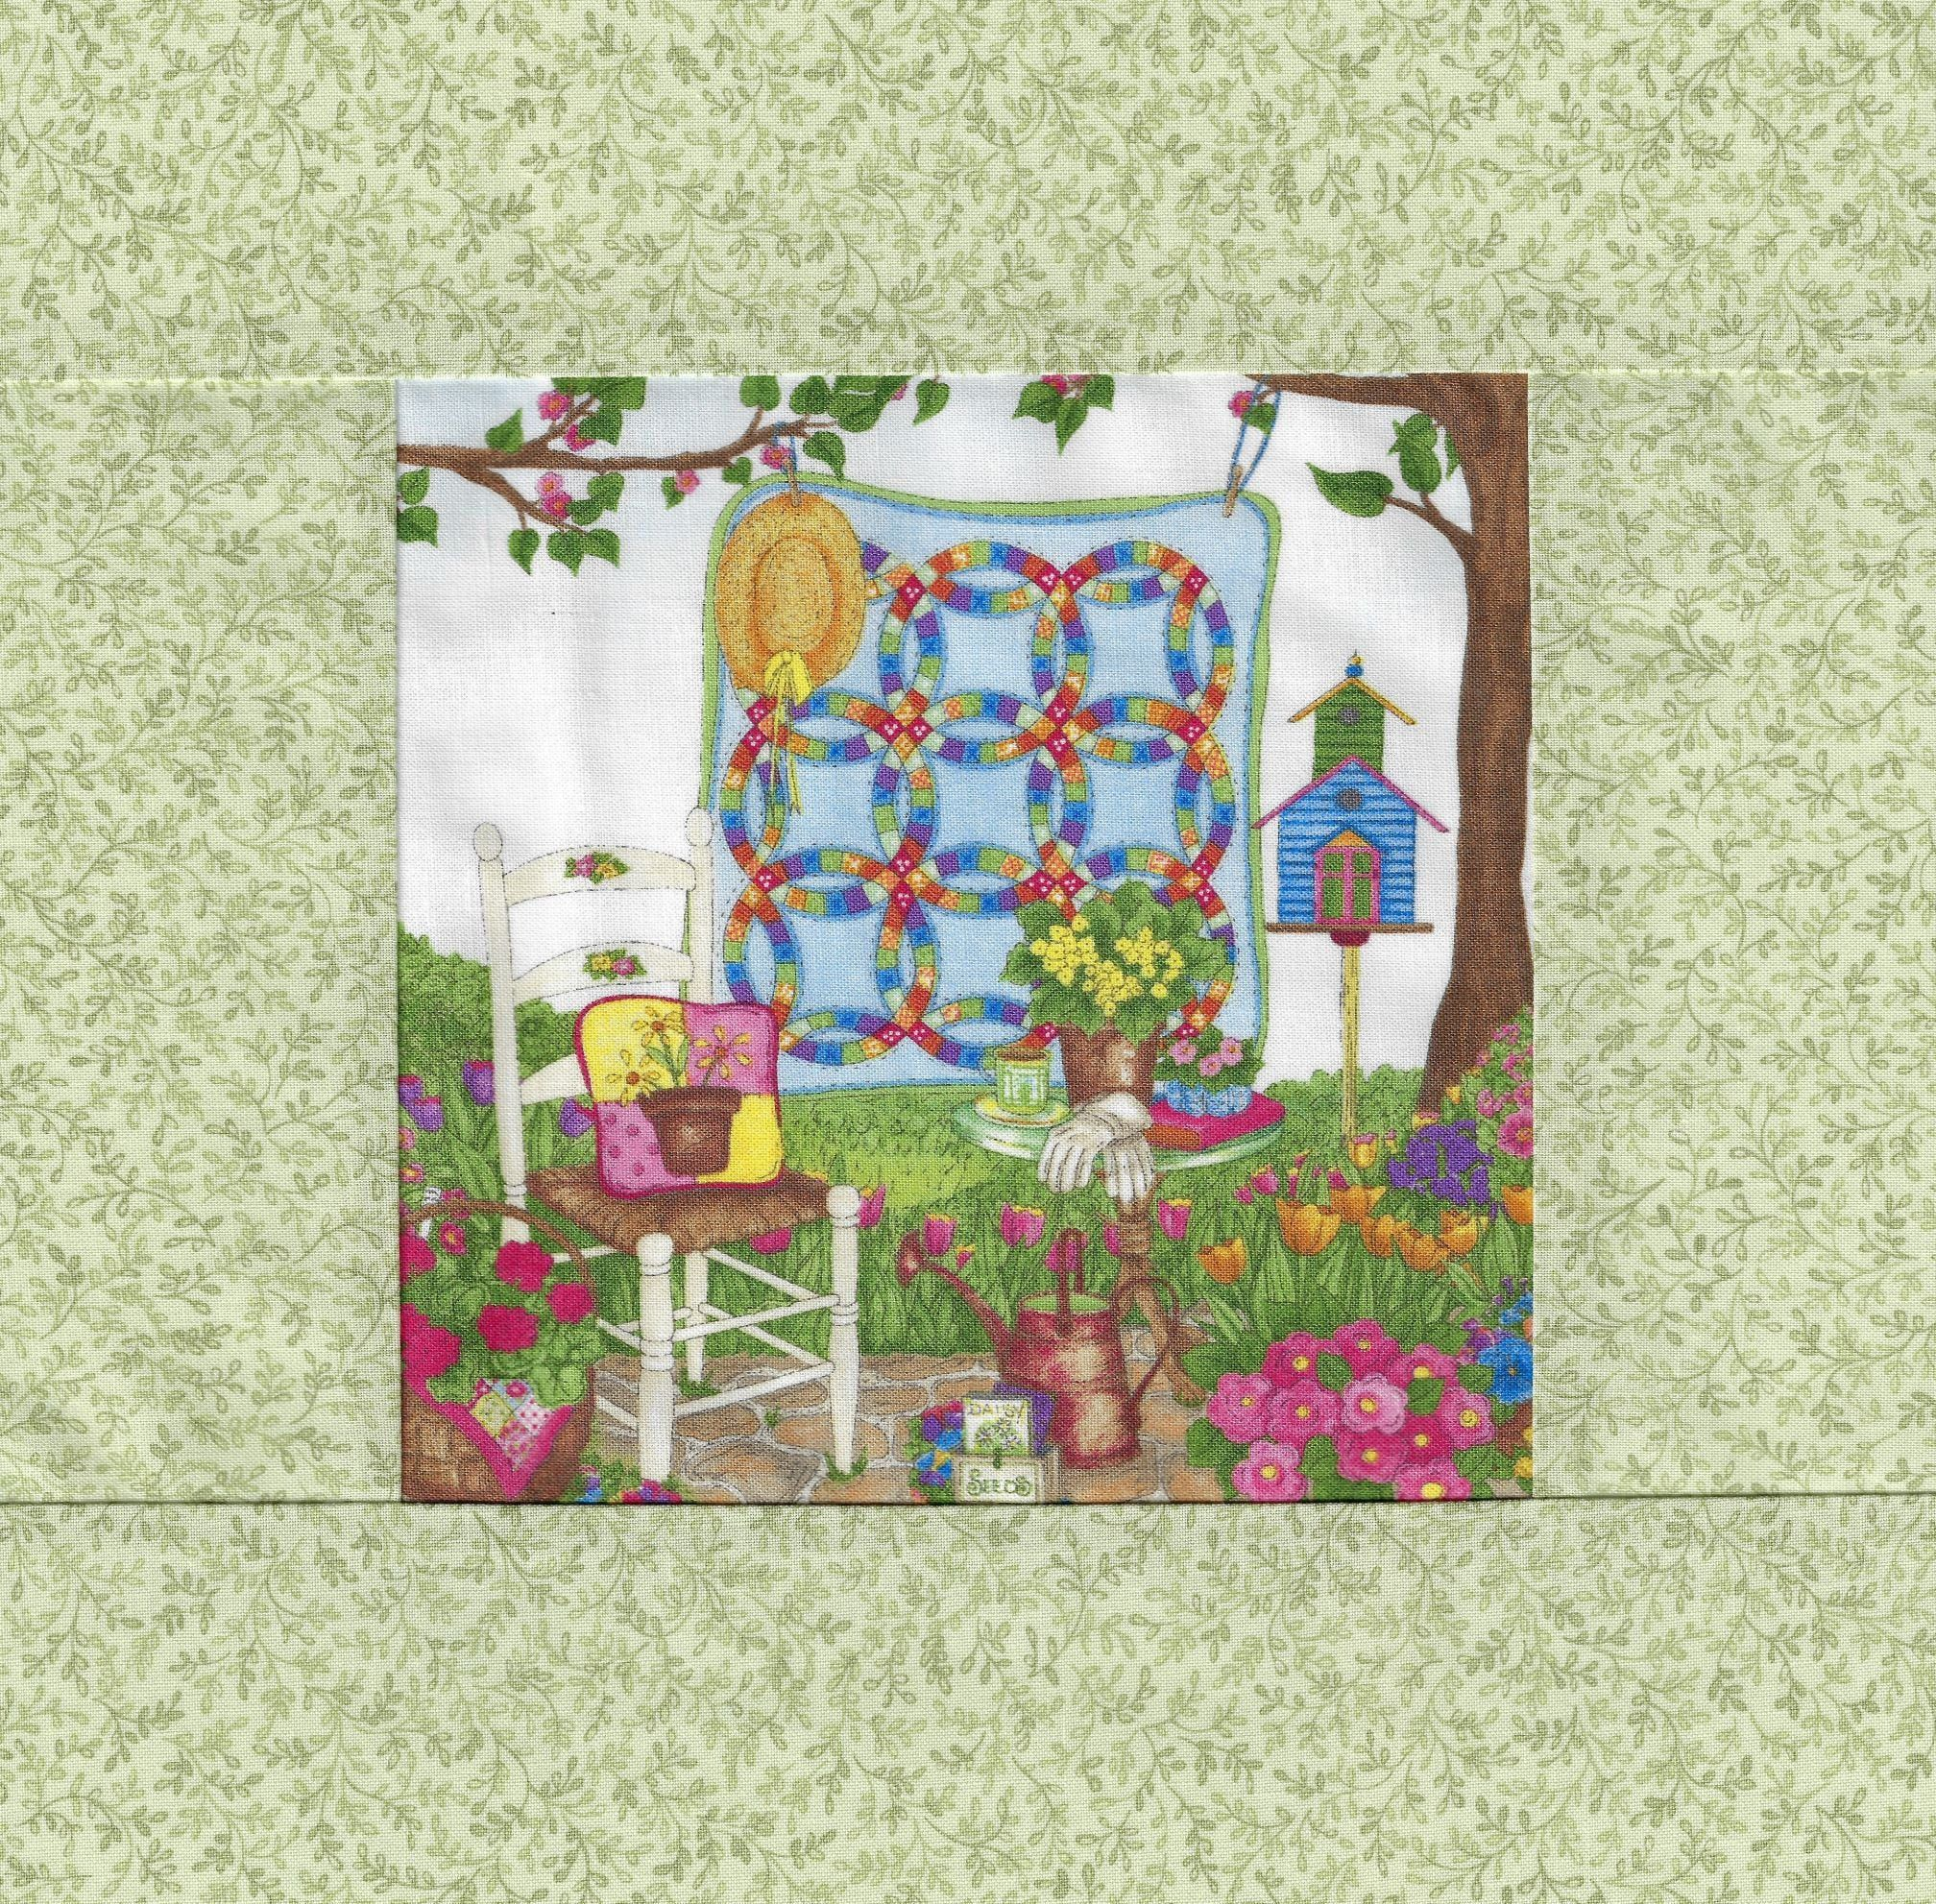 Pin on Pretty Quilt Fabric & Kits Available at Specialjays